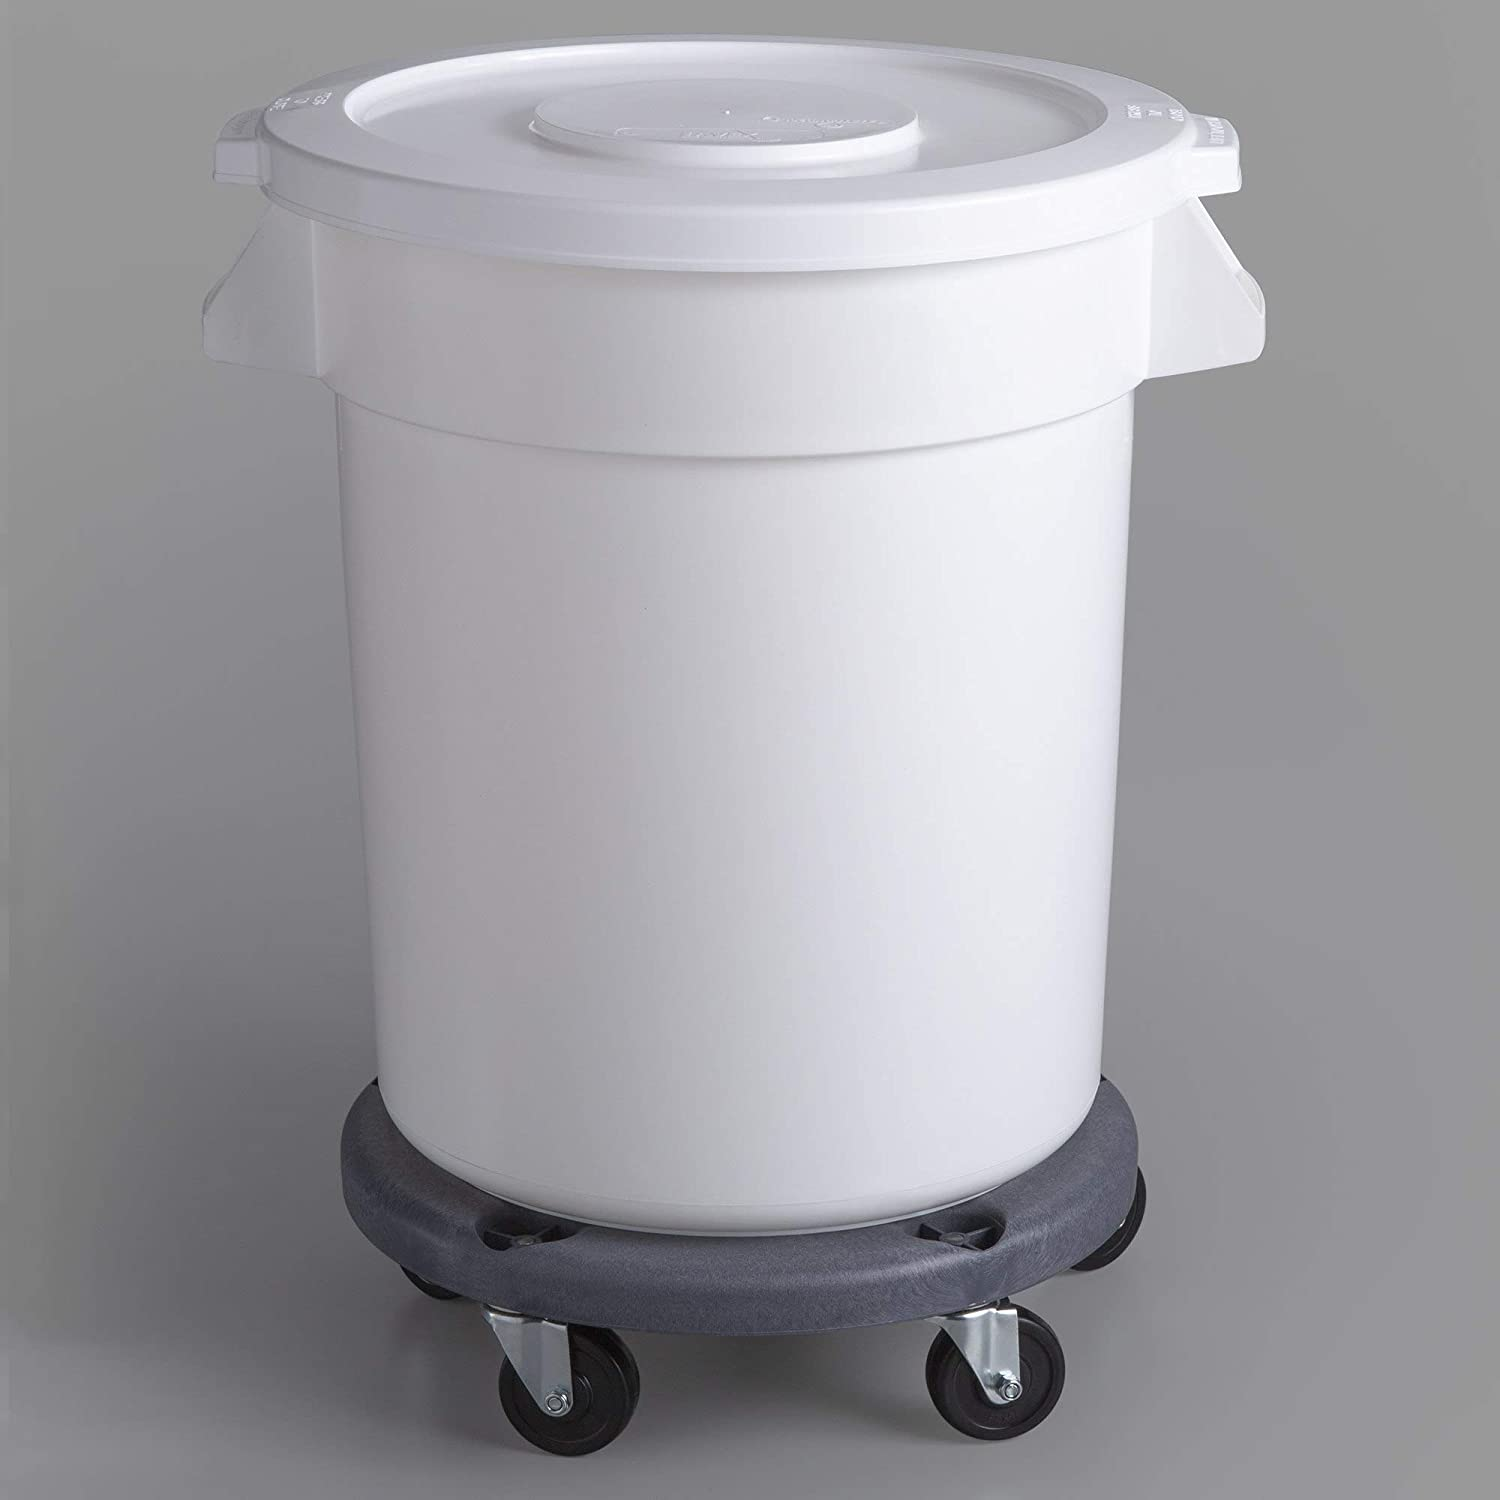 10 Pack! 20 Gallon / 75 Liters White Round Ingredient Bin/Commercial Trash Can with Lid and Dolly. Trash Container. Trash Bucket. Garbage Bin. Waste Bin. Home Trash Can. Commercial Waste bin